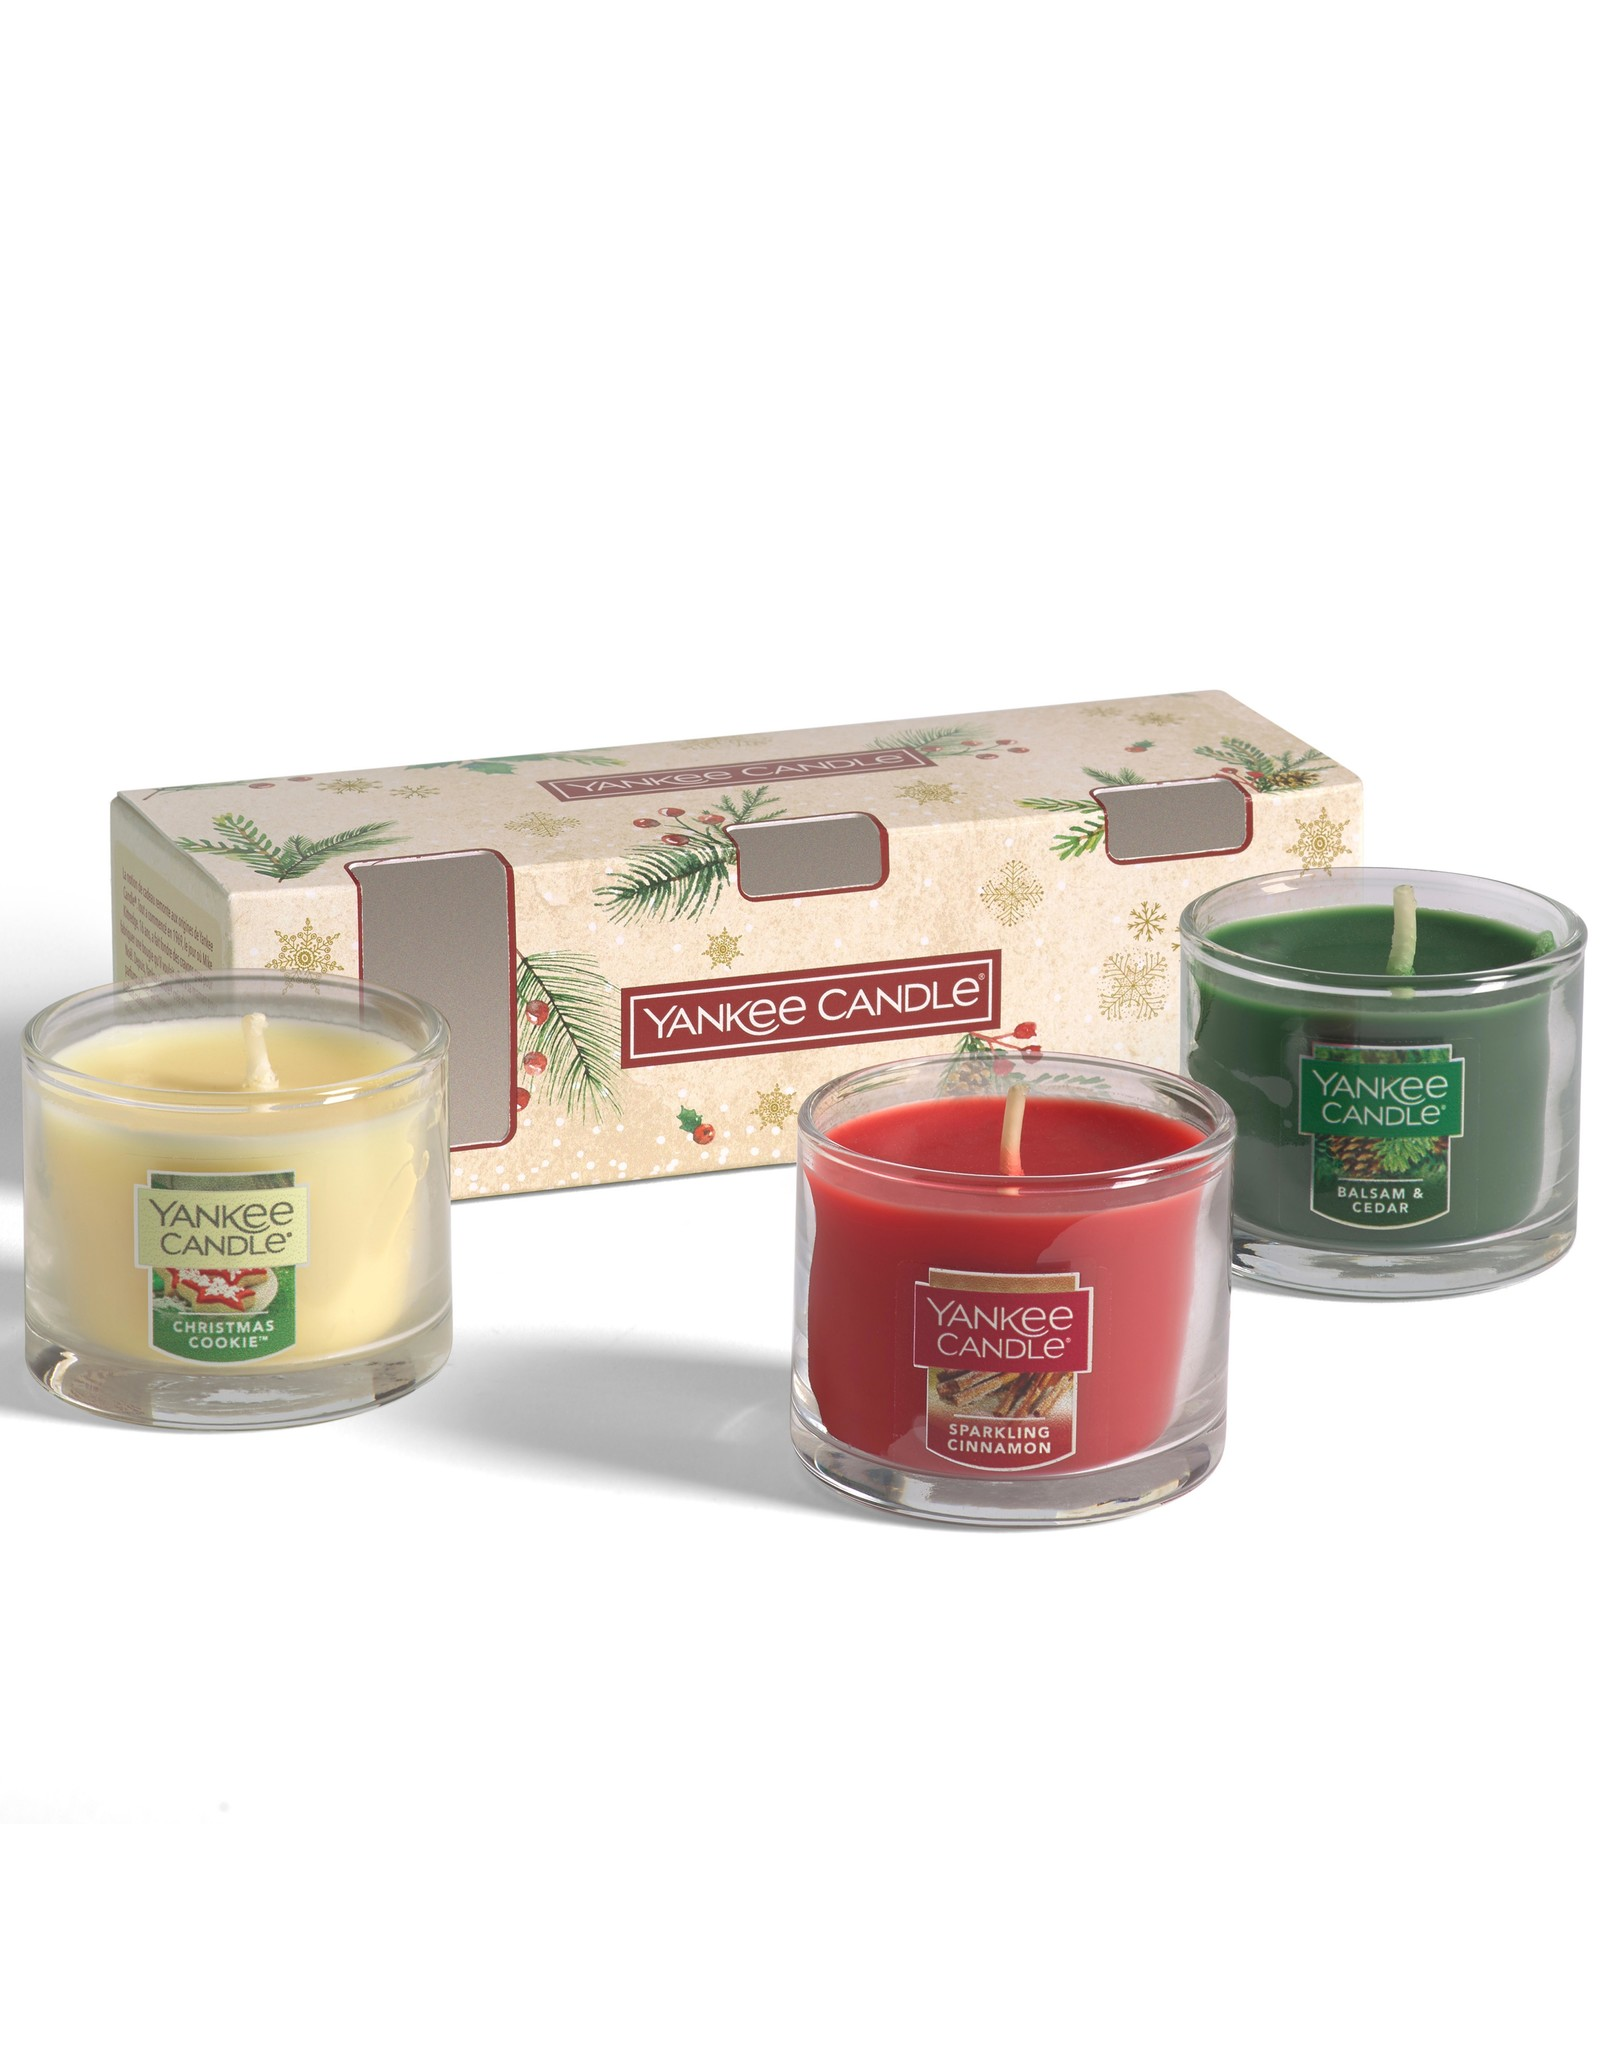 Yankee Candle Magical Christmas Morning - 3 Filled Votives